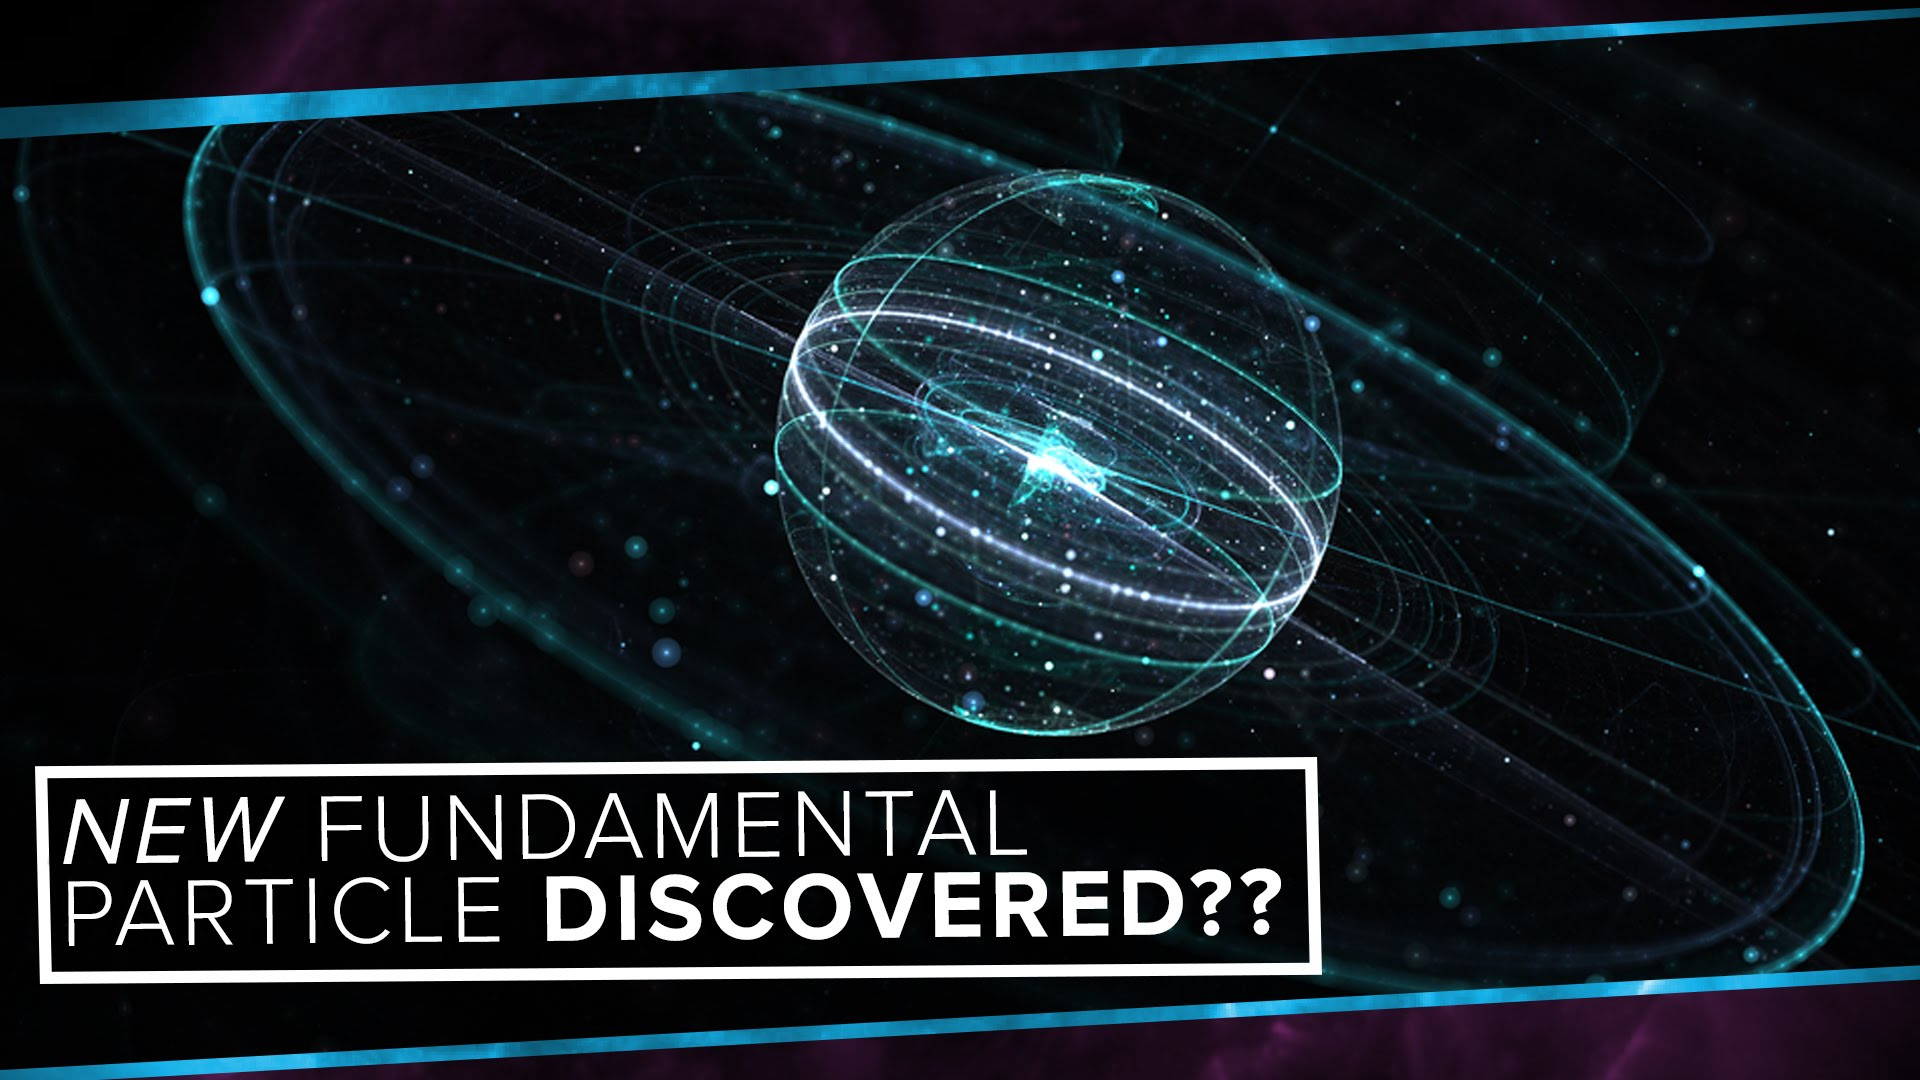 New Fundamental Particle Discovered??